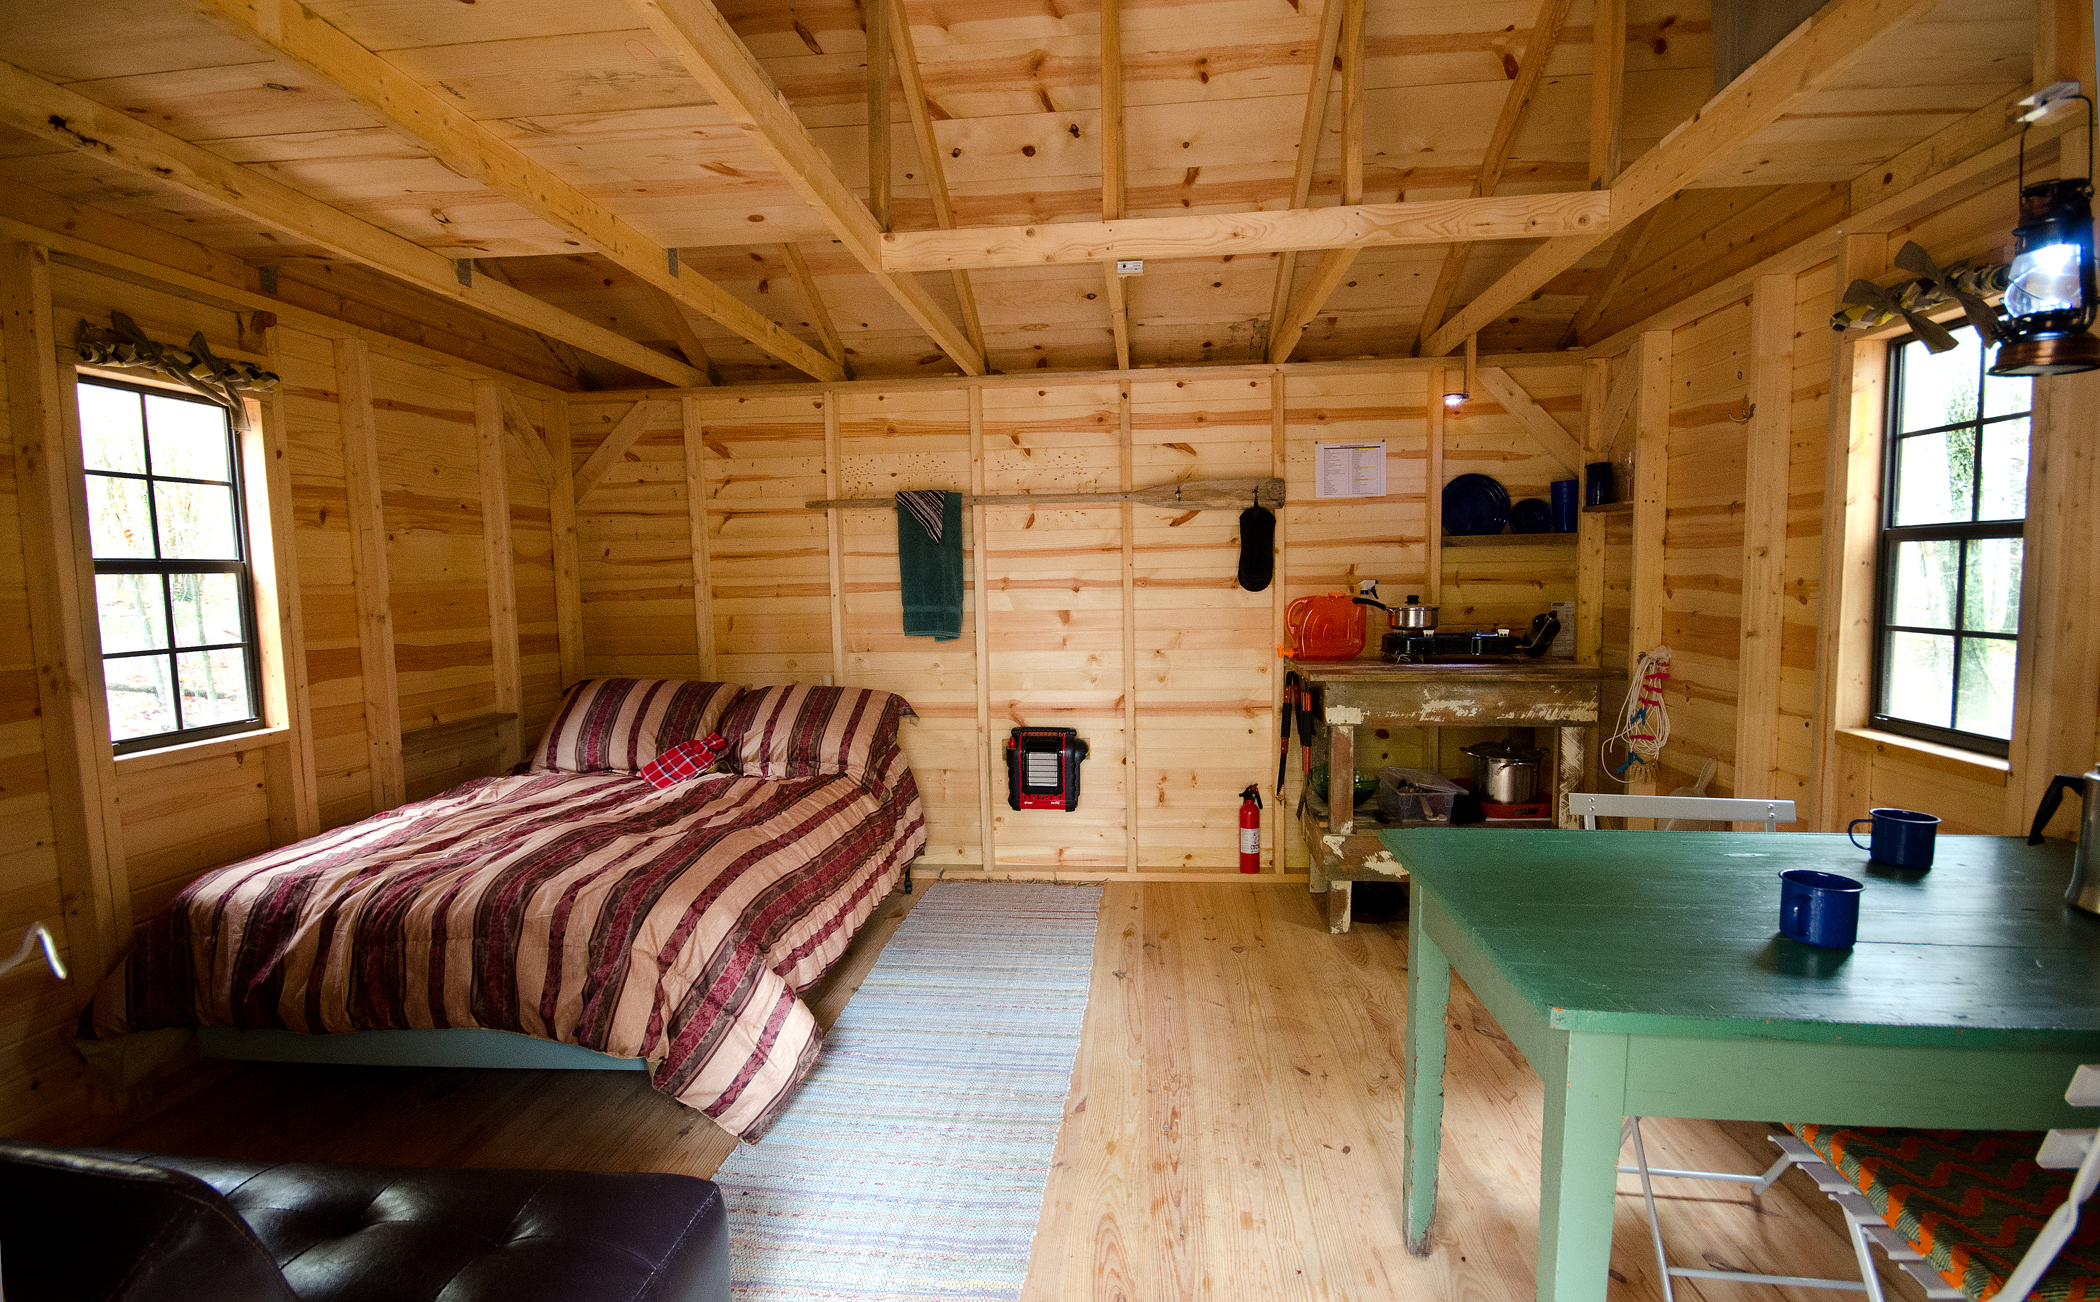 Wild Yough Glamping Huts Turn Key Camping In Space And Style